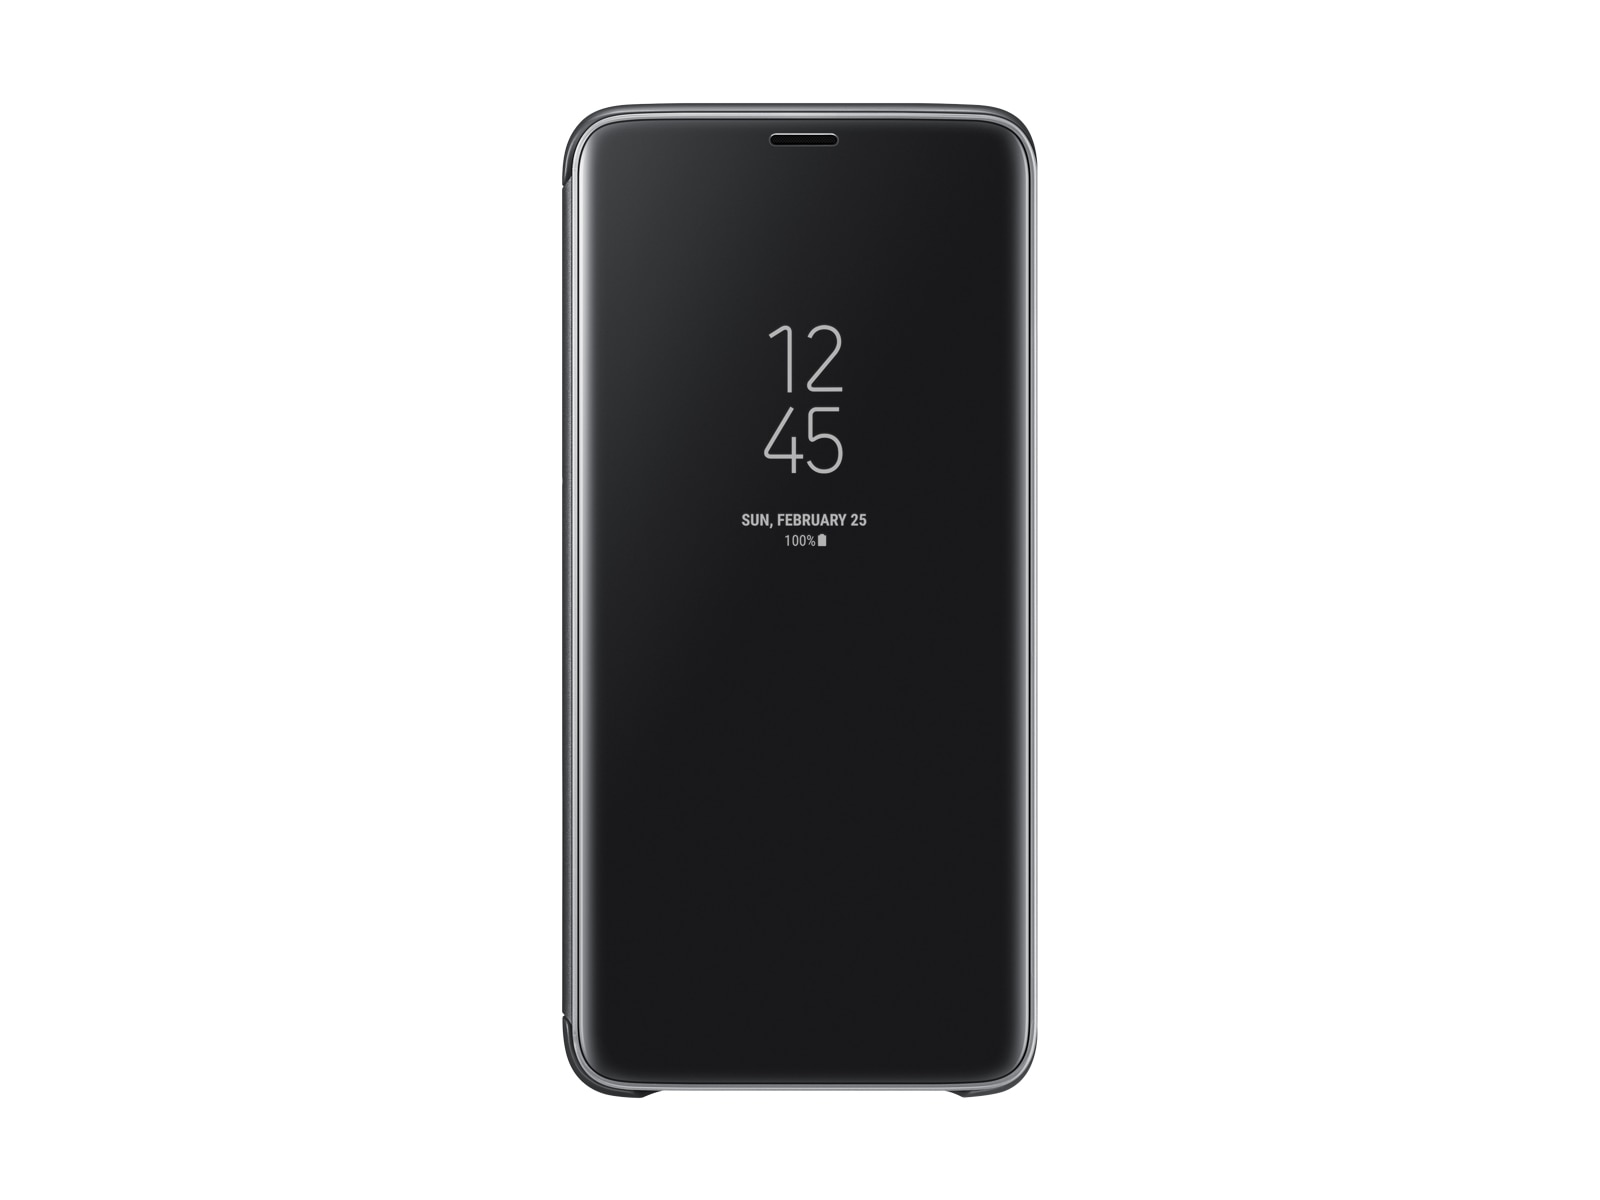 Thumbnail image of Galaxy S9+ S-View Cover, Black